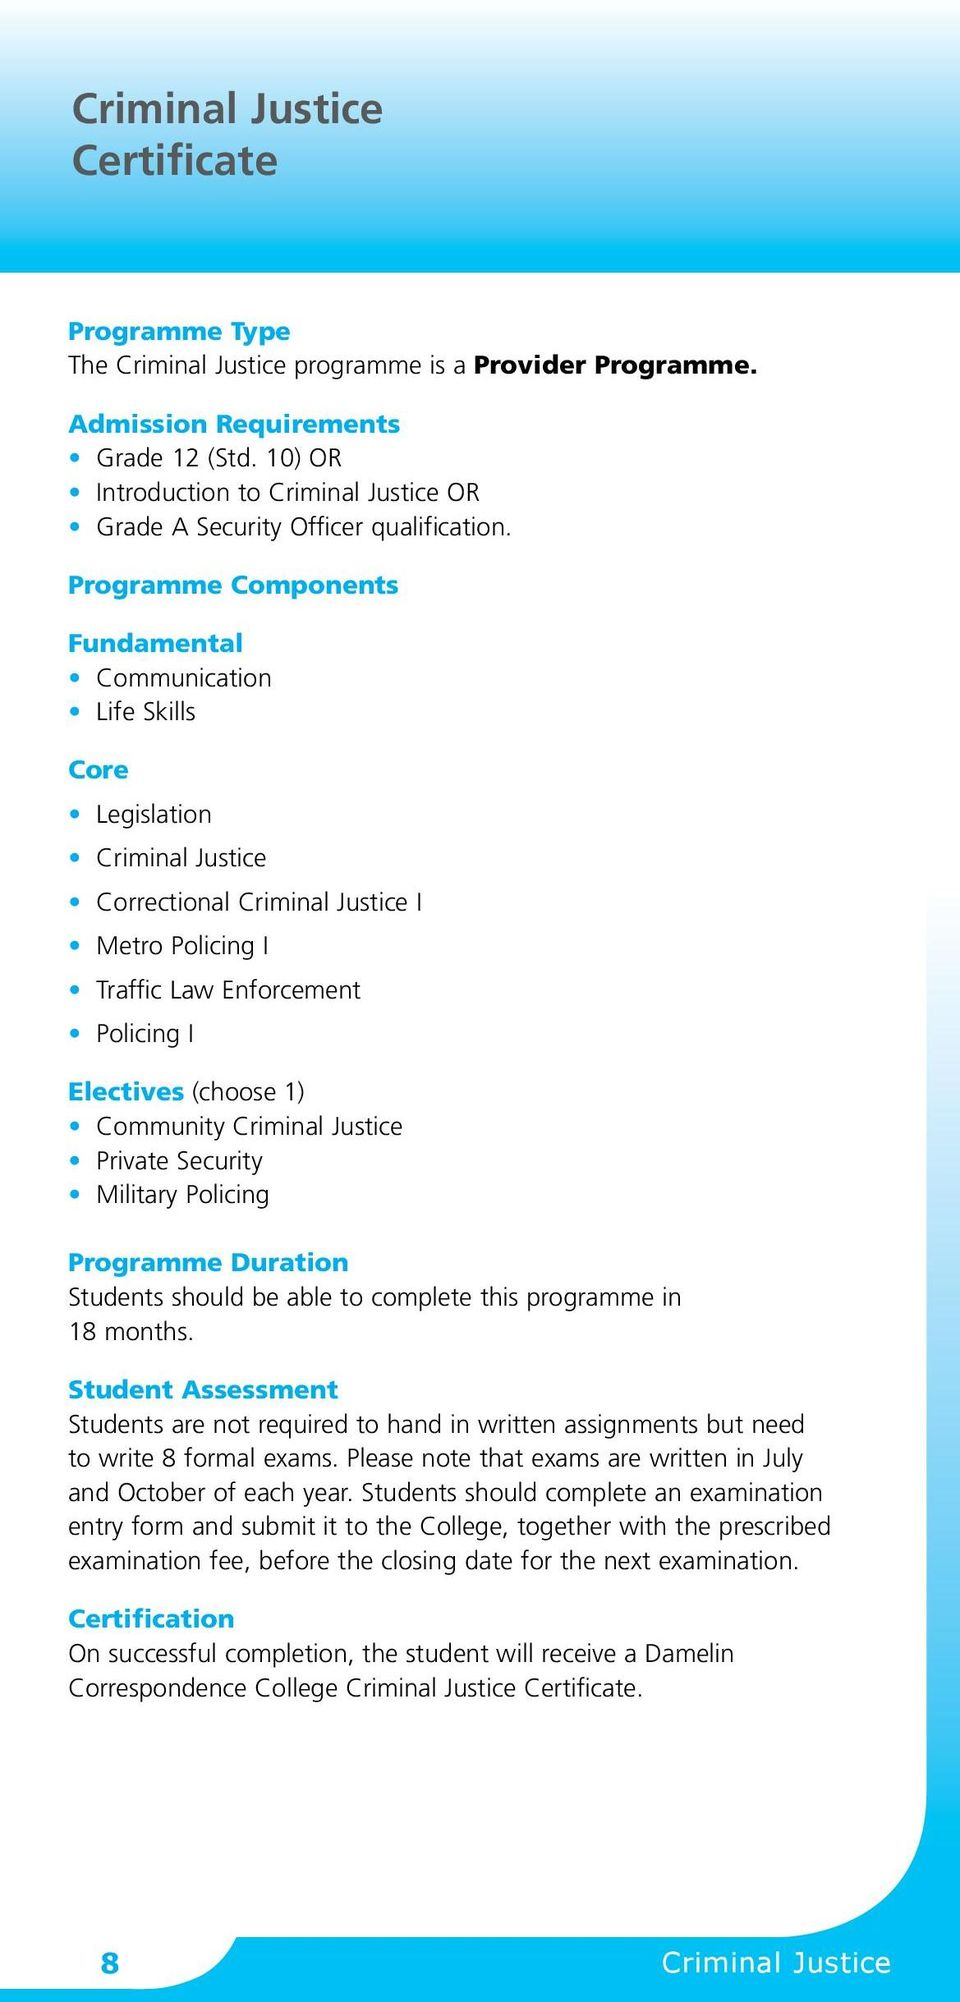 Programme Components Fundamental Communication Life Skills Core Legislation Criminal Justice Correctional Criminal Justice I Metro Policing I Traffic Law Enforcement Policing I Electives (choose 1)